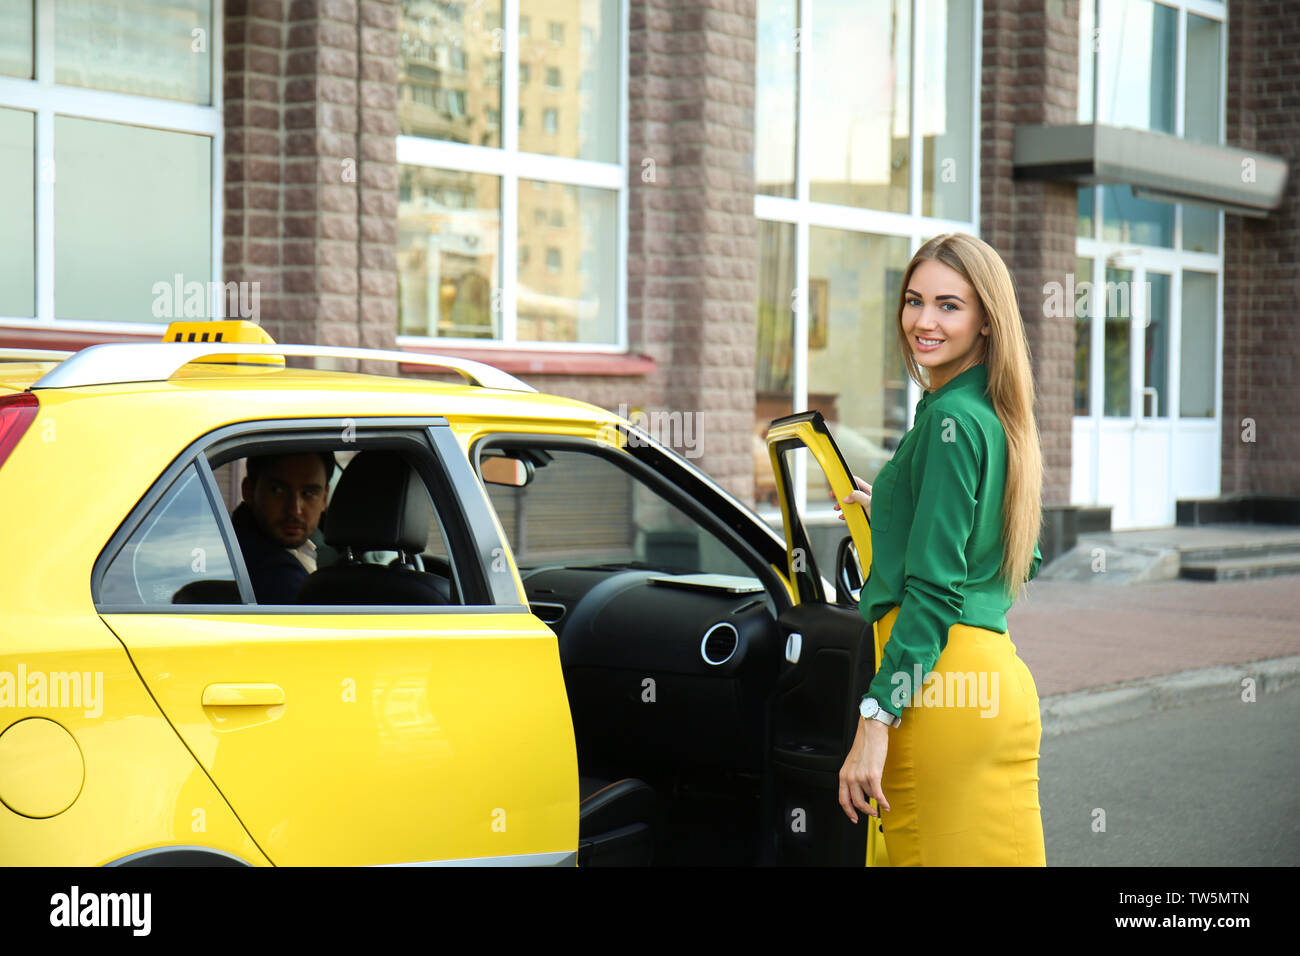 Young woman standing near taxi car on street - Stock Image